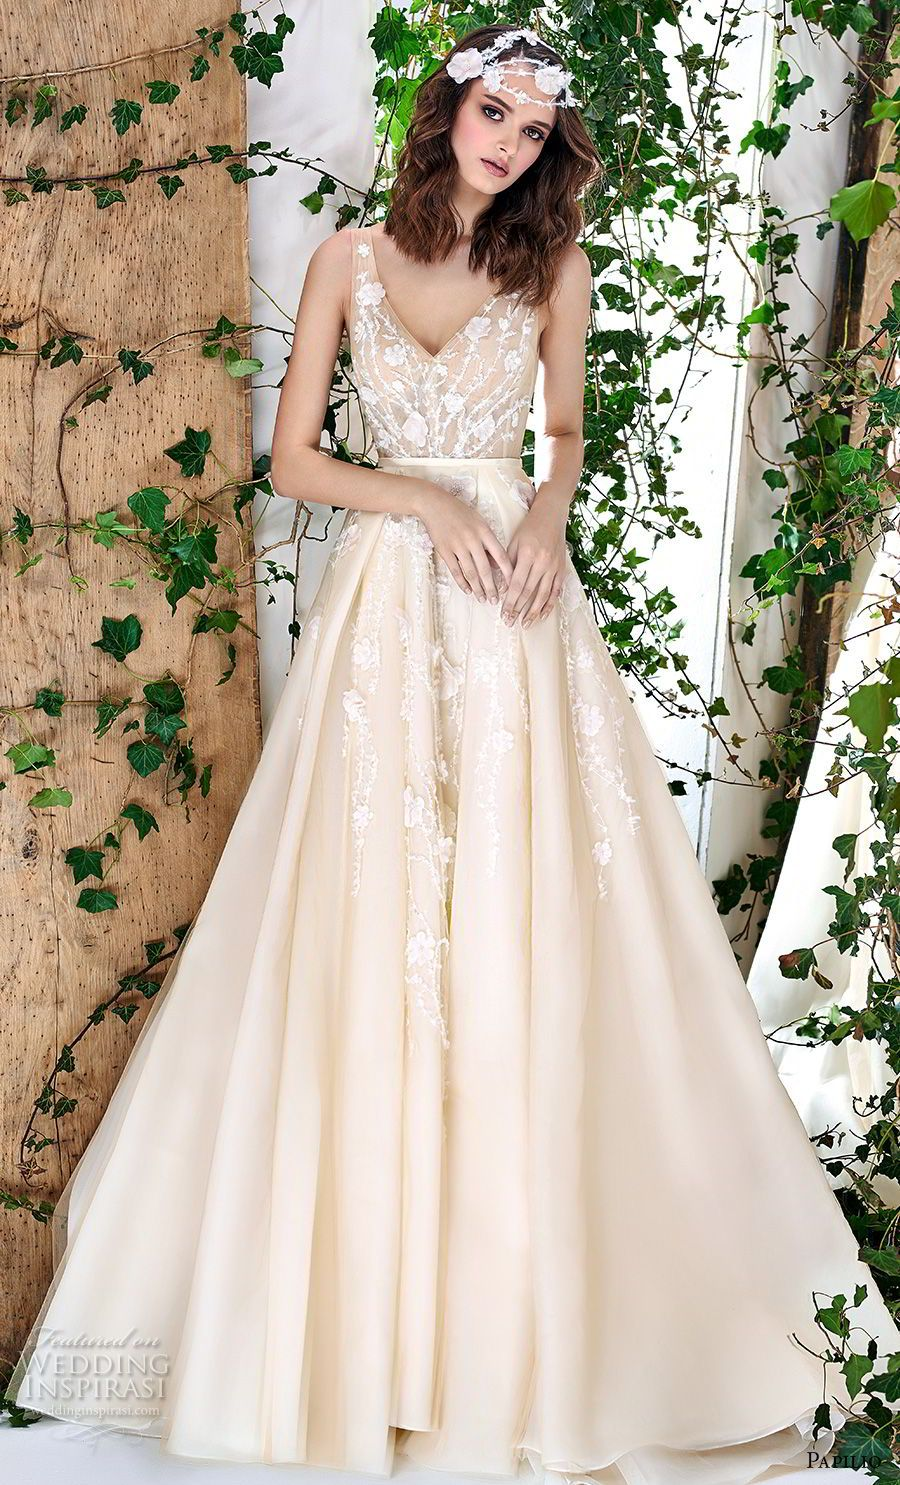 Papilio wedding dresses u ucwonderlandud bridal collection